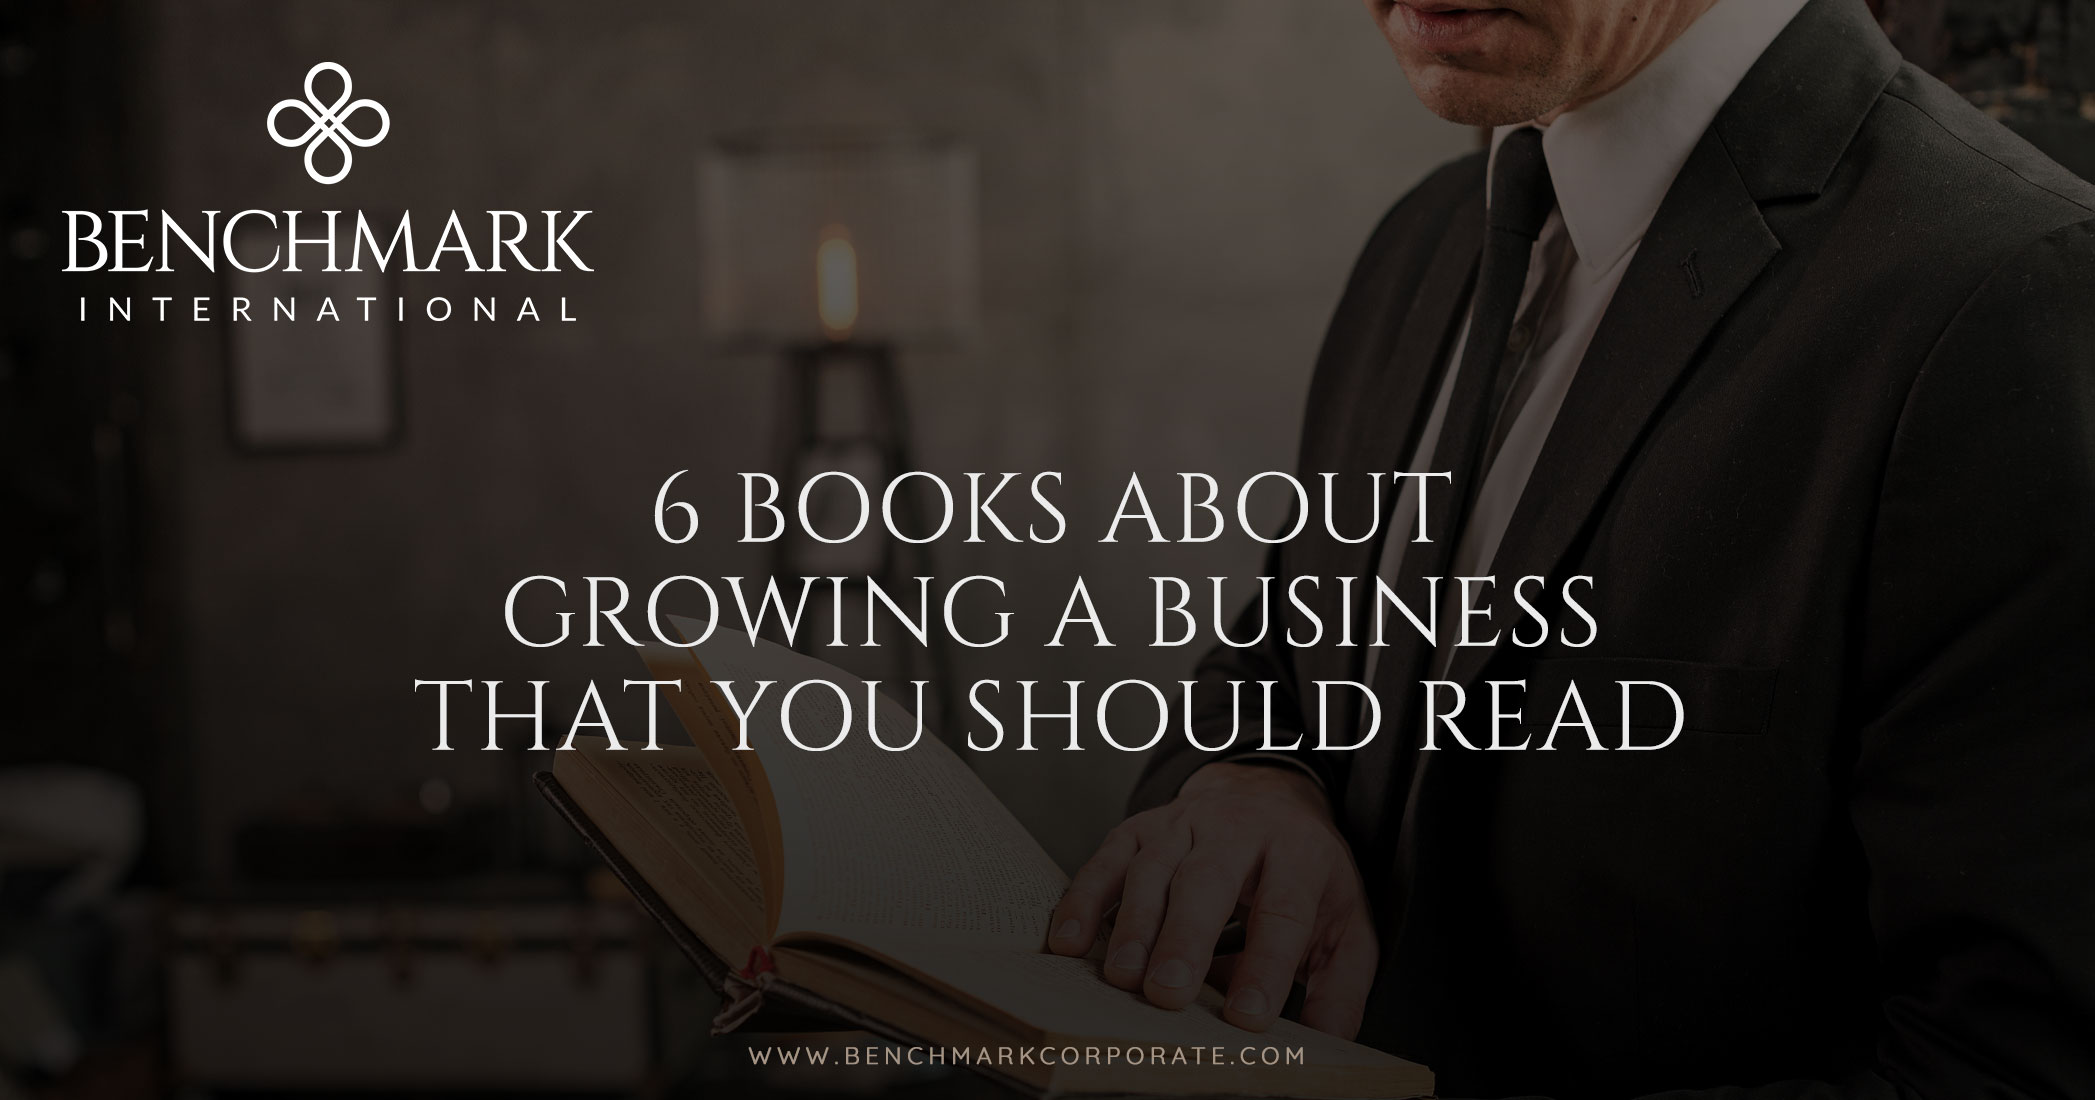 6 Books About Growing A Business That You Should Read